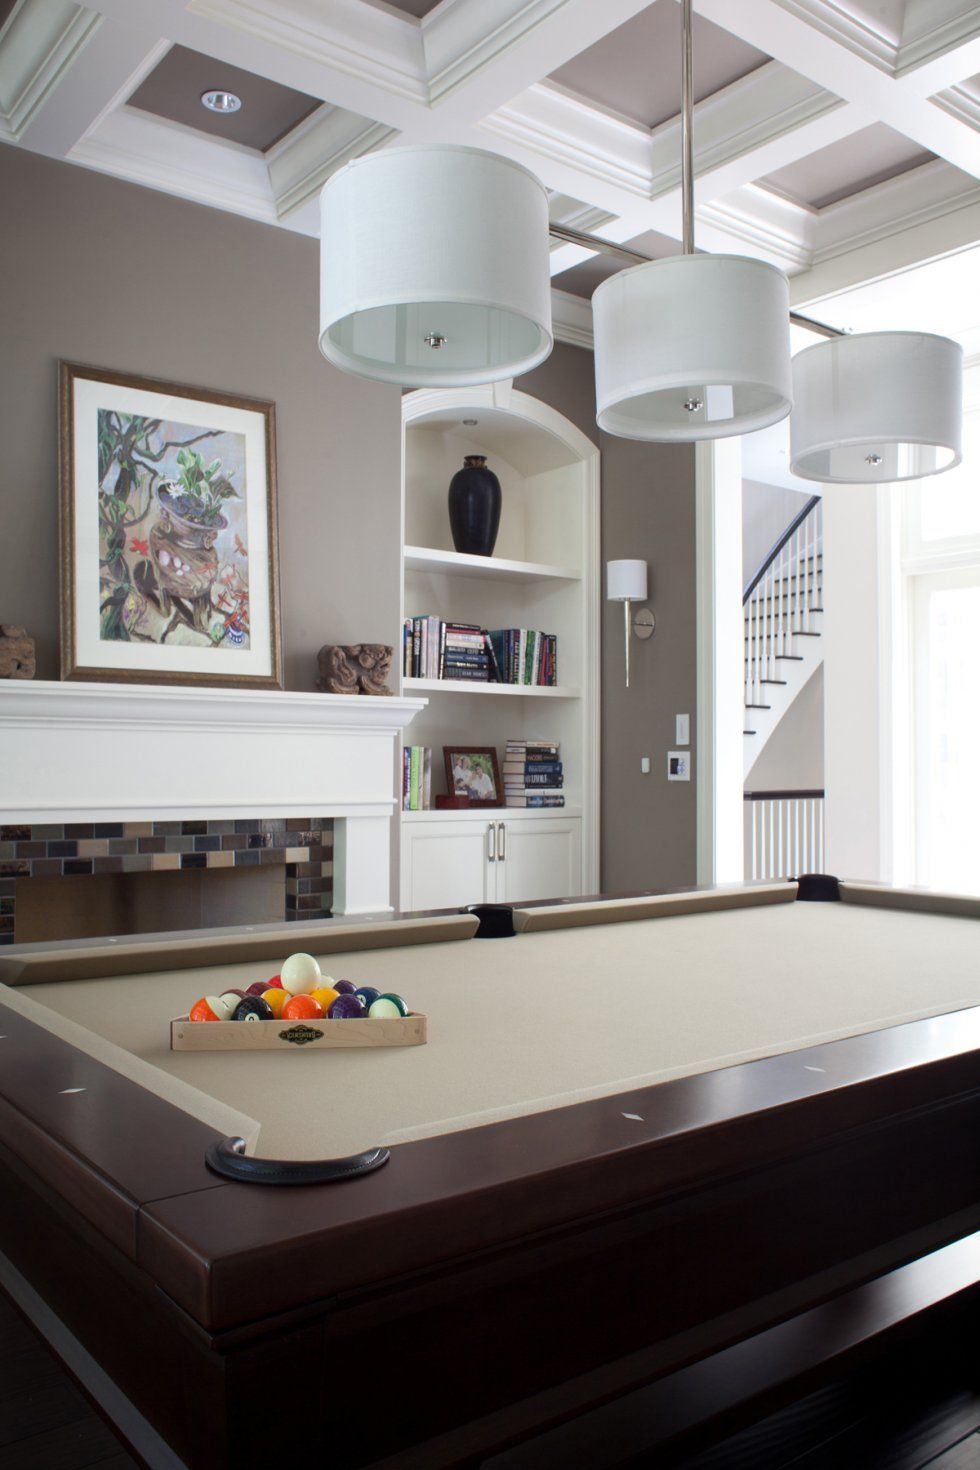 Pool Room Ideas astounding room design for billiard area beautiful home billiard rooms with multiple tvs exquisite design Find This Pin And More On My Living New Living Space Ideas Exciting Home Billiard Room